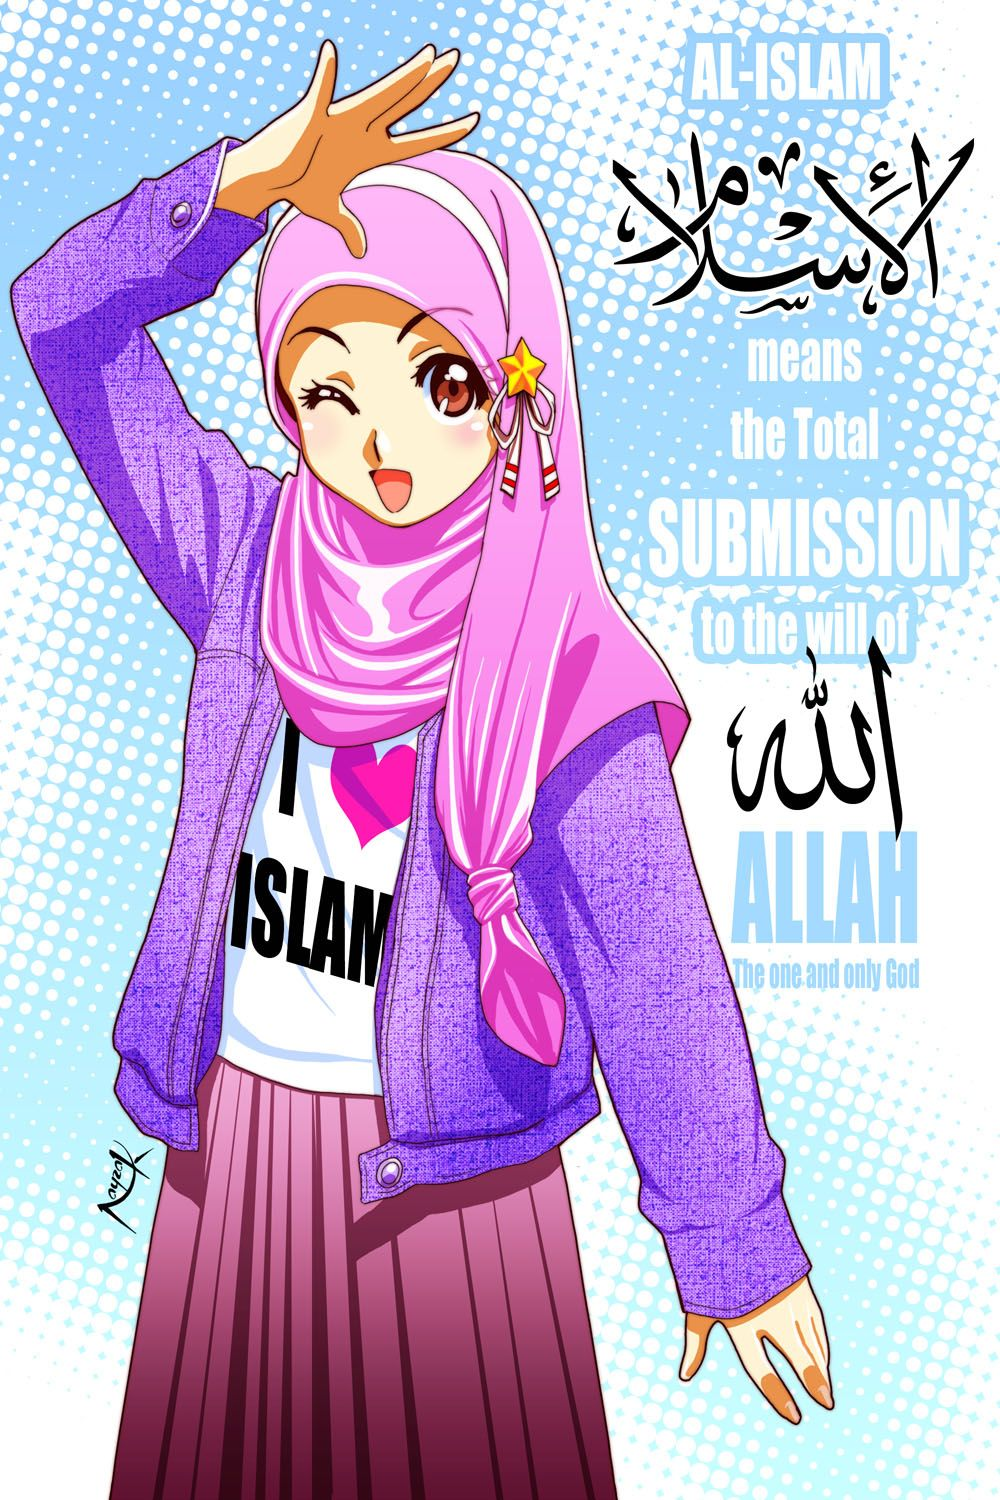 Islam Means By Nayzak On Deviantart Anime Muslimah Anime Muslim Hijab Cartoon